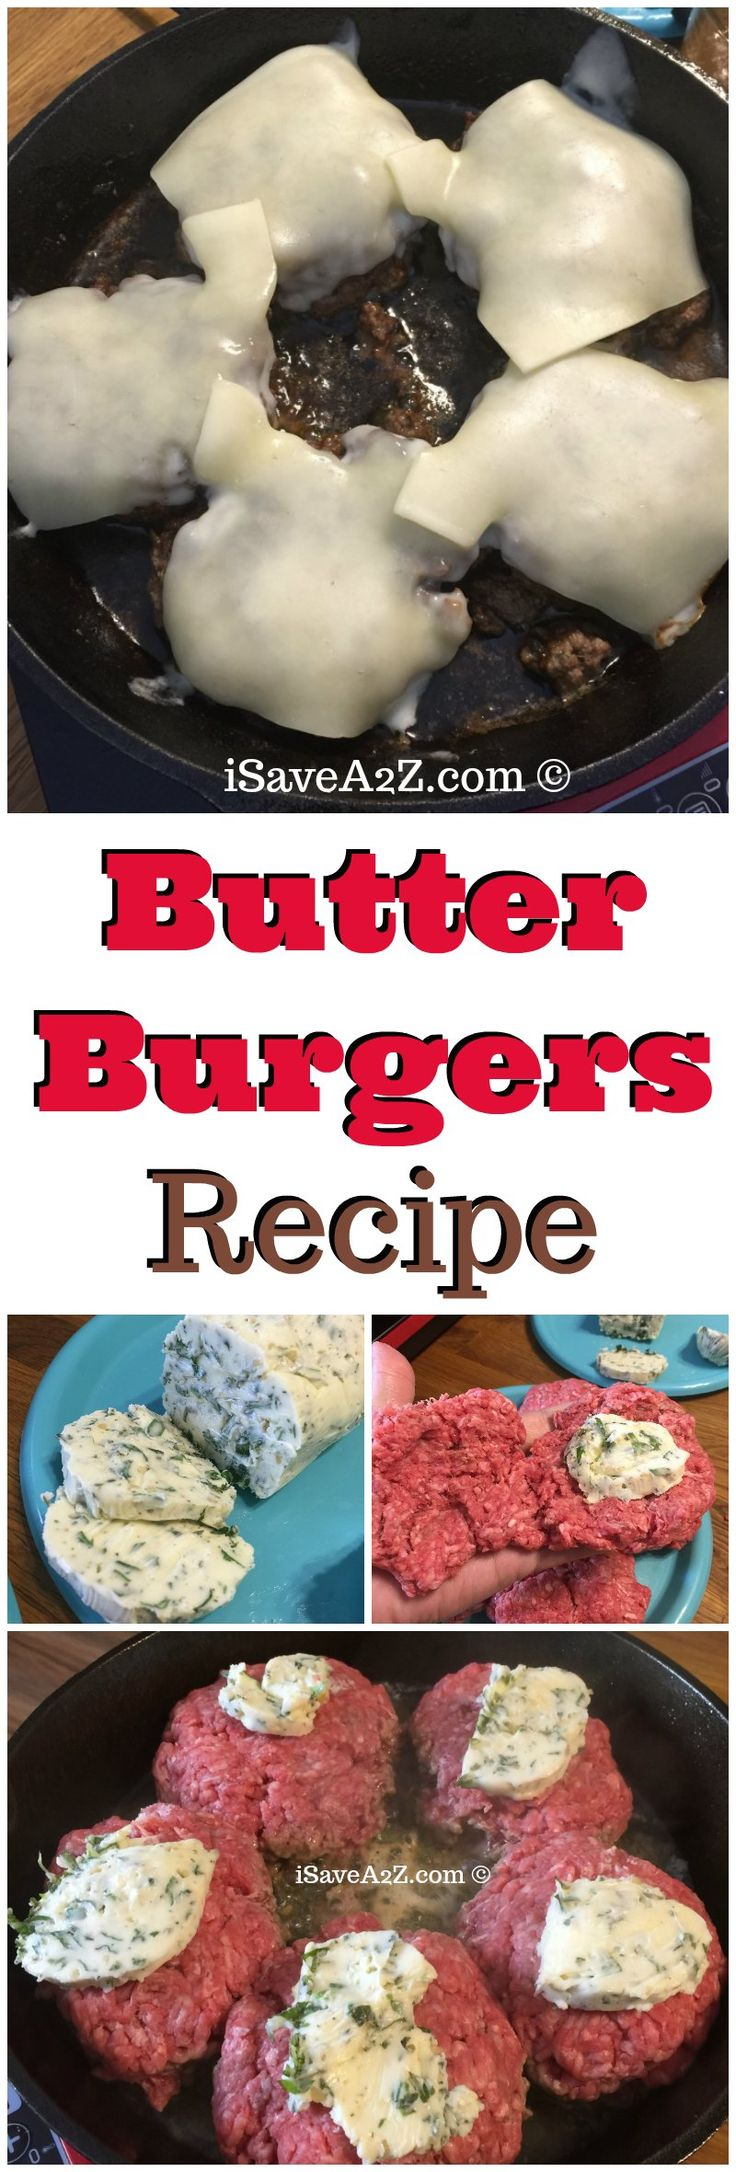 Butter Burgers Recipe TO DIE FOR!!  Keto Friendly and Low Carb too! via @isavea2z